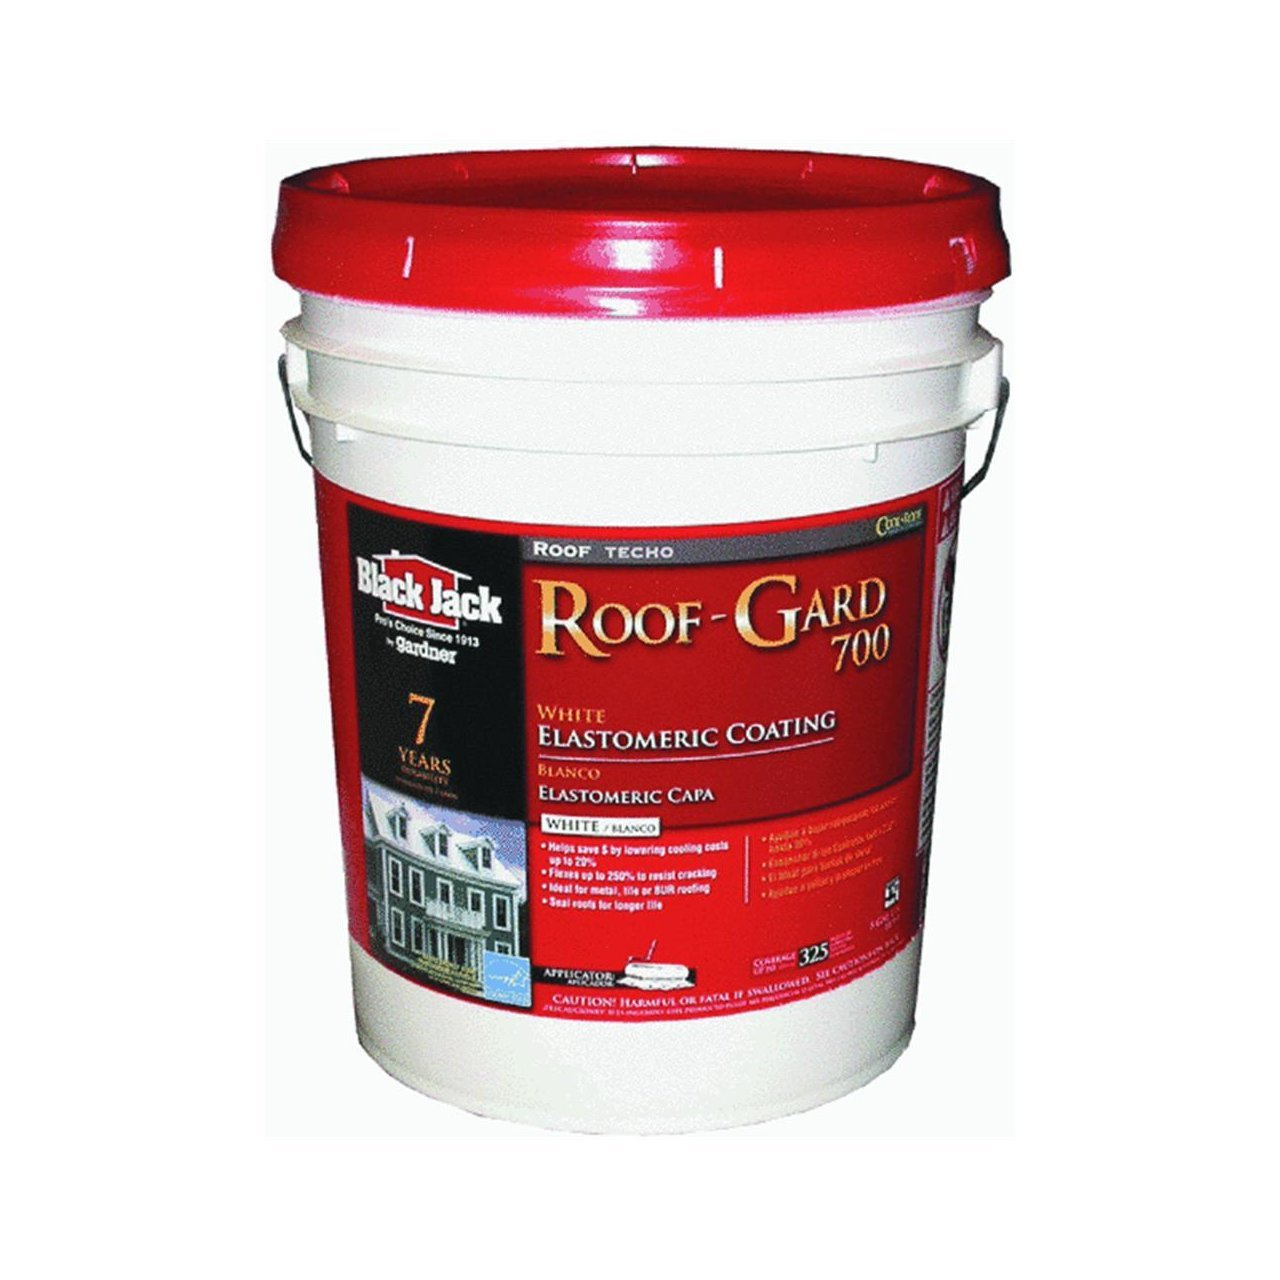 Superb GARDNER GIBSON 1/30/5527 4.75 Gallon White Elastomeric Roof Coating    Painting Coveralls   Amazon.com